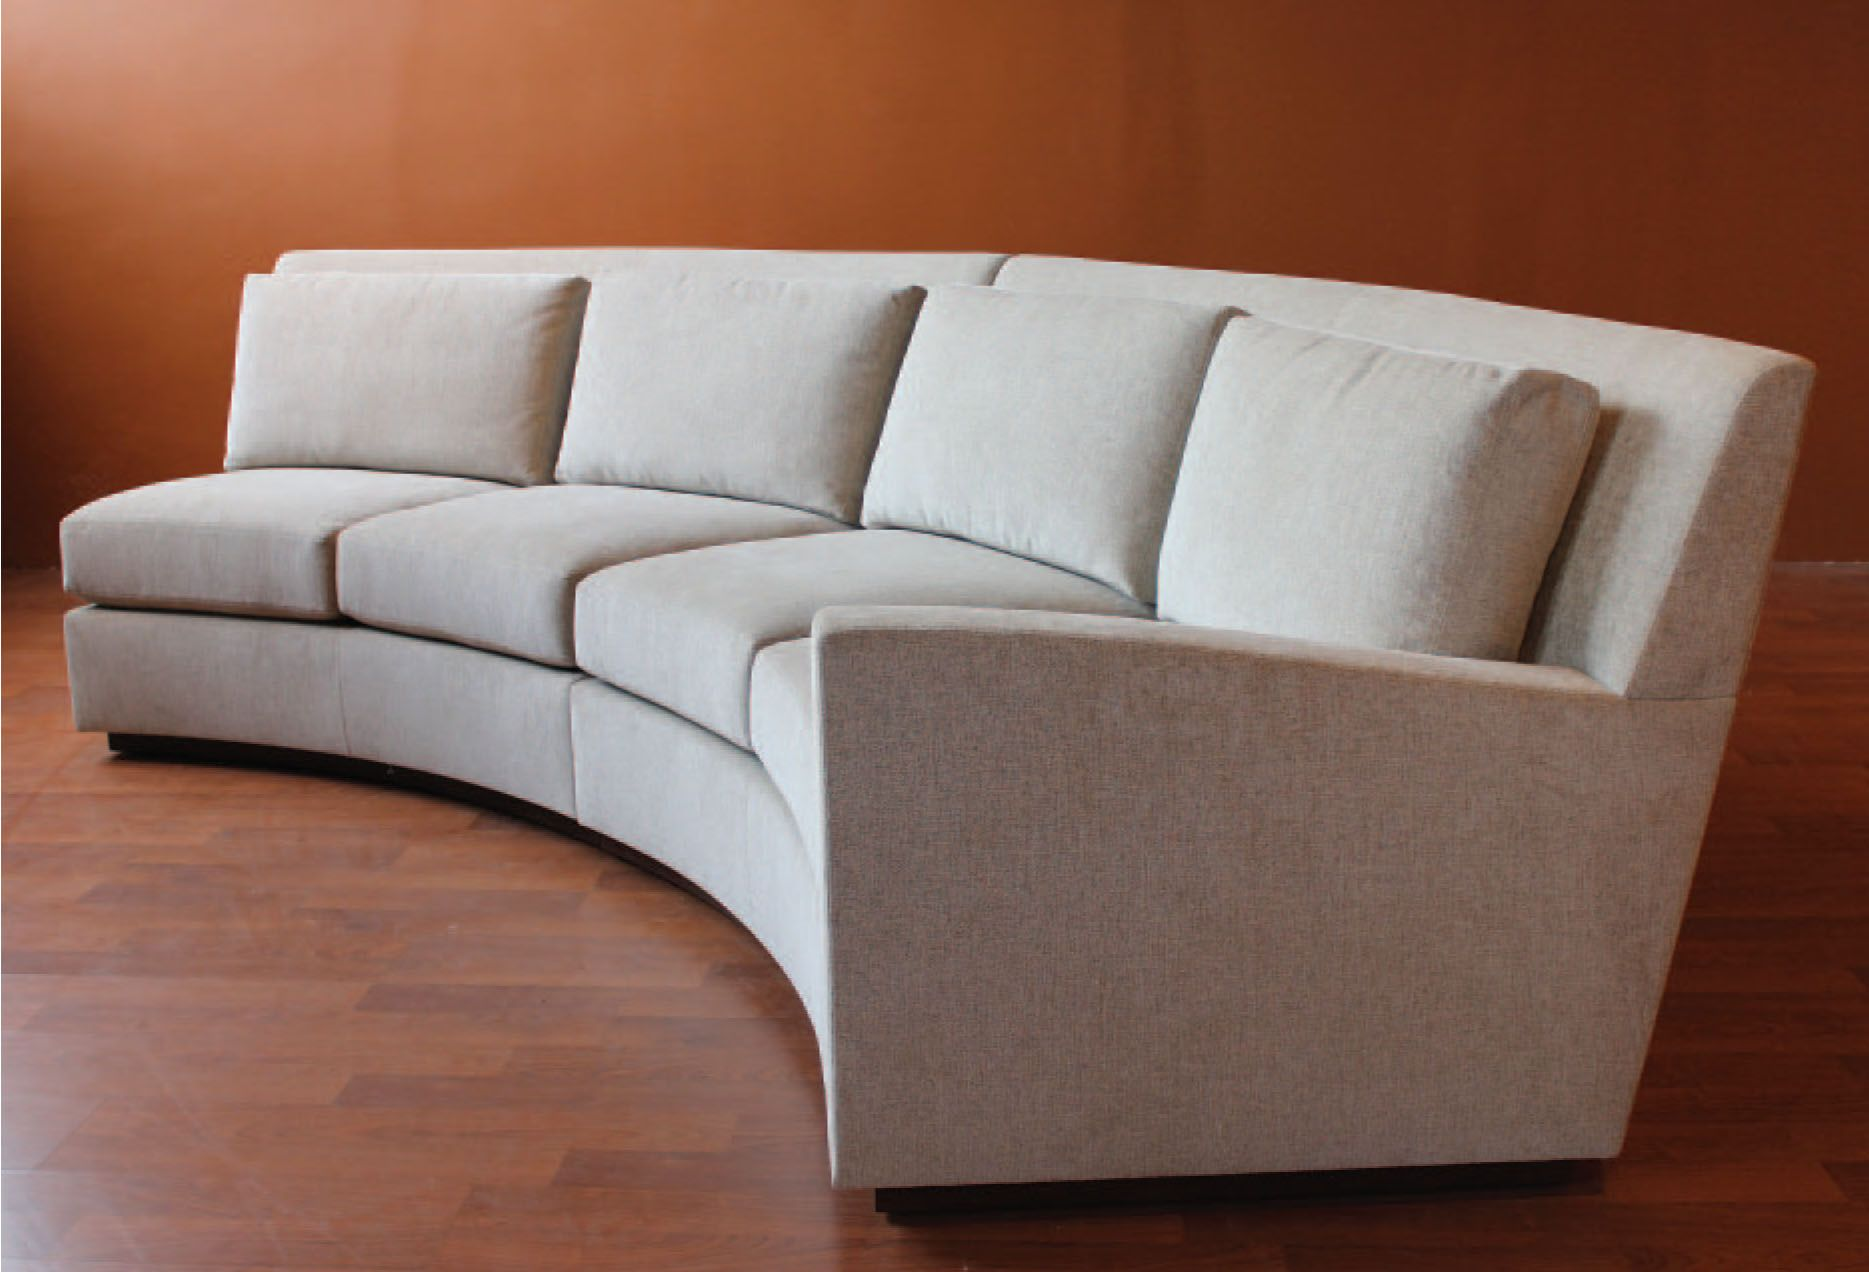 geneva curved loveseat  for the home  pinterest  curved couch  - geneva curved loveseat